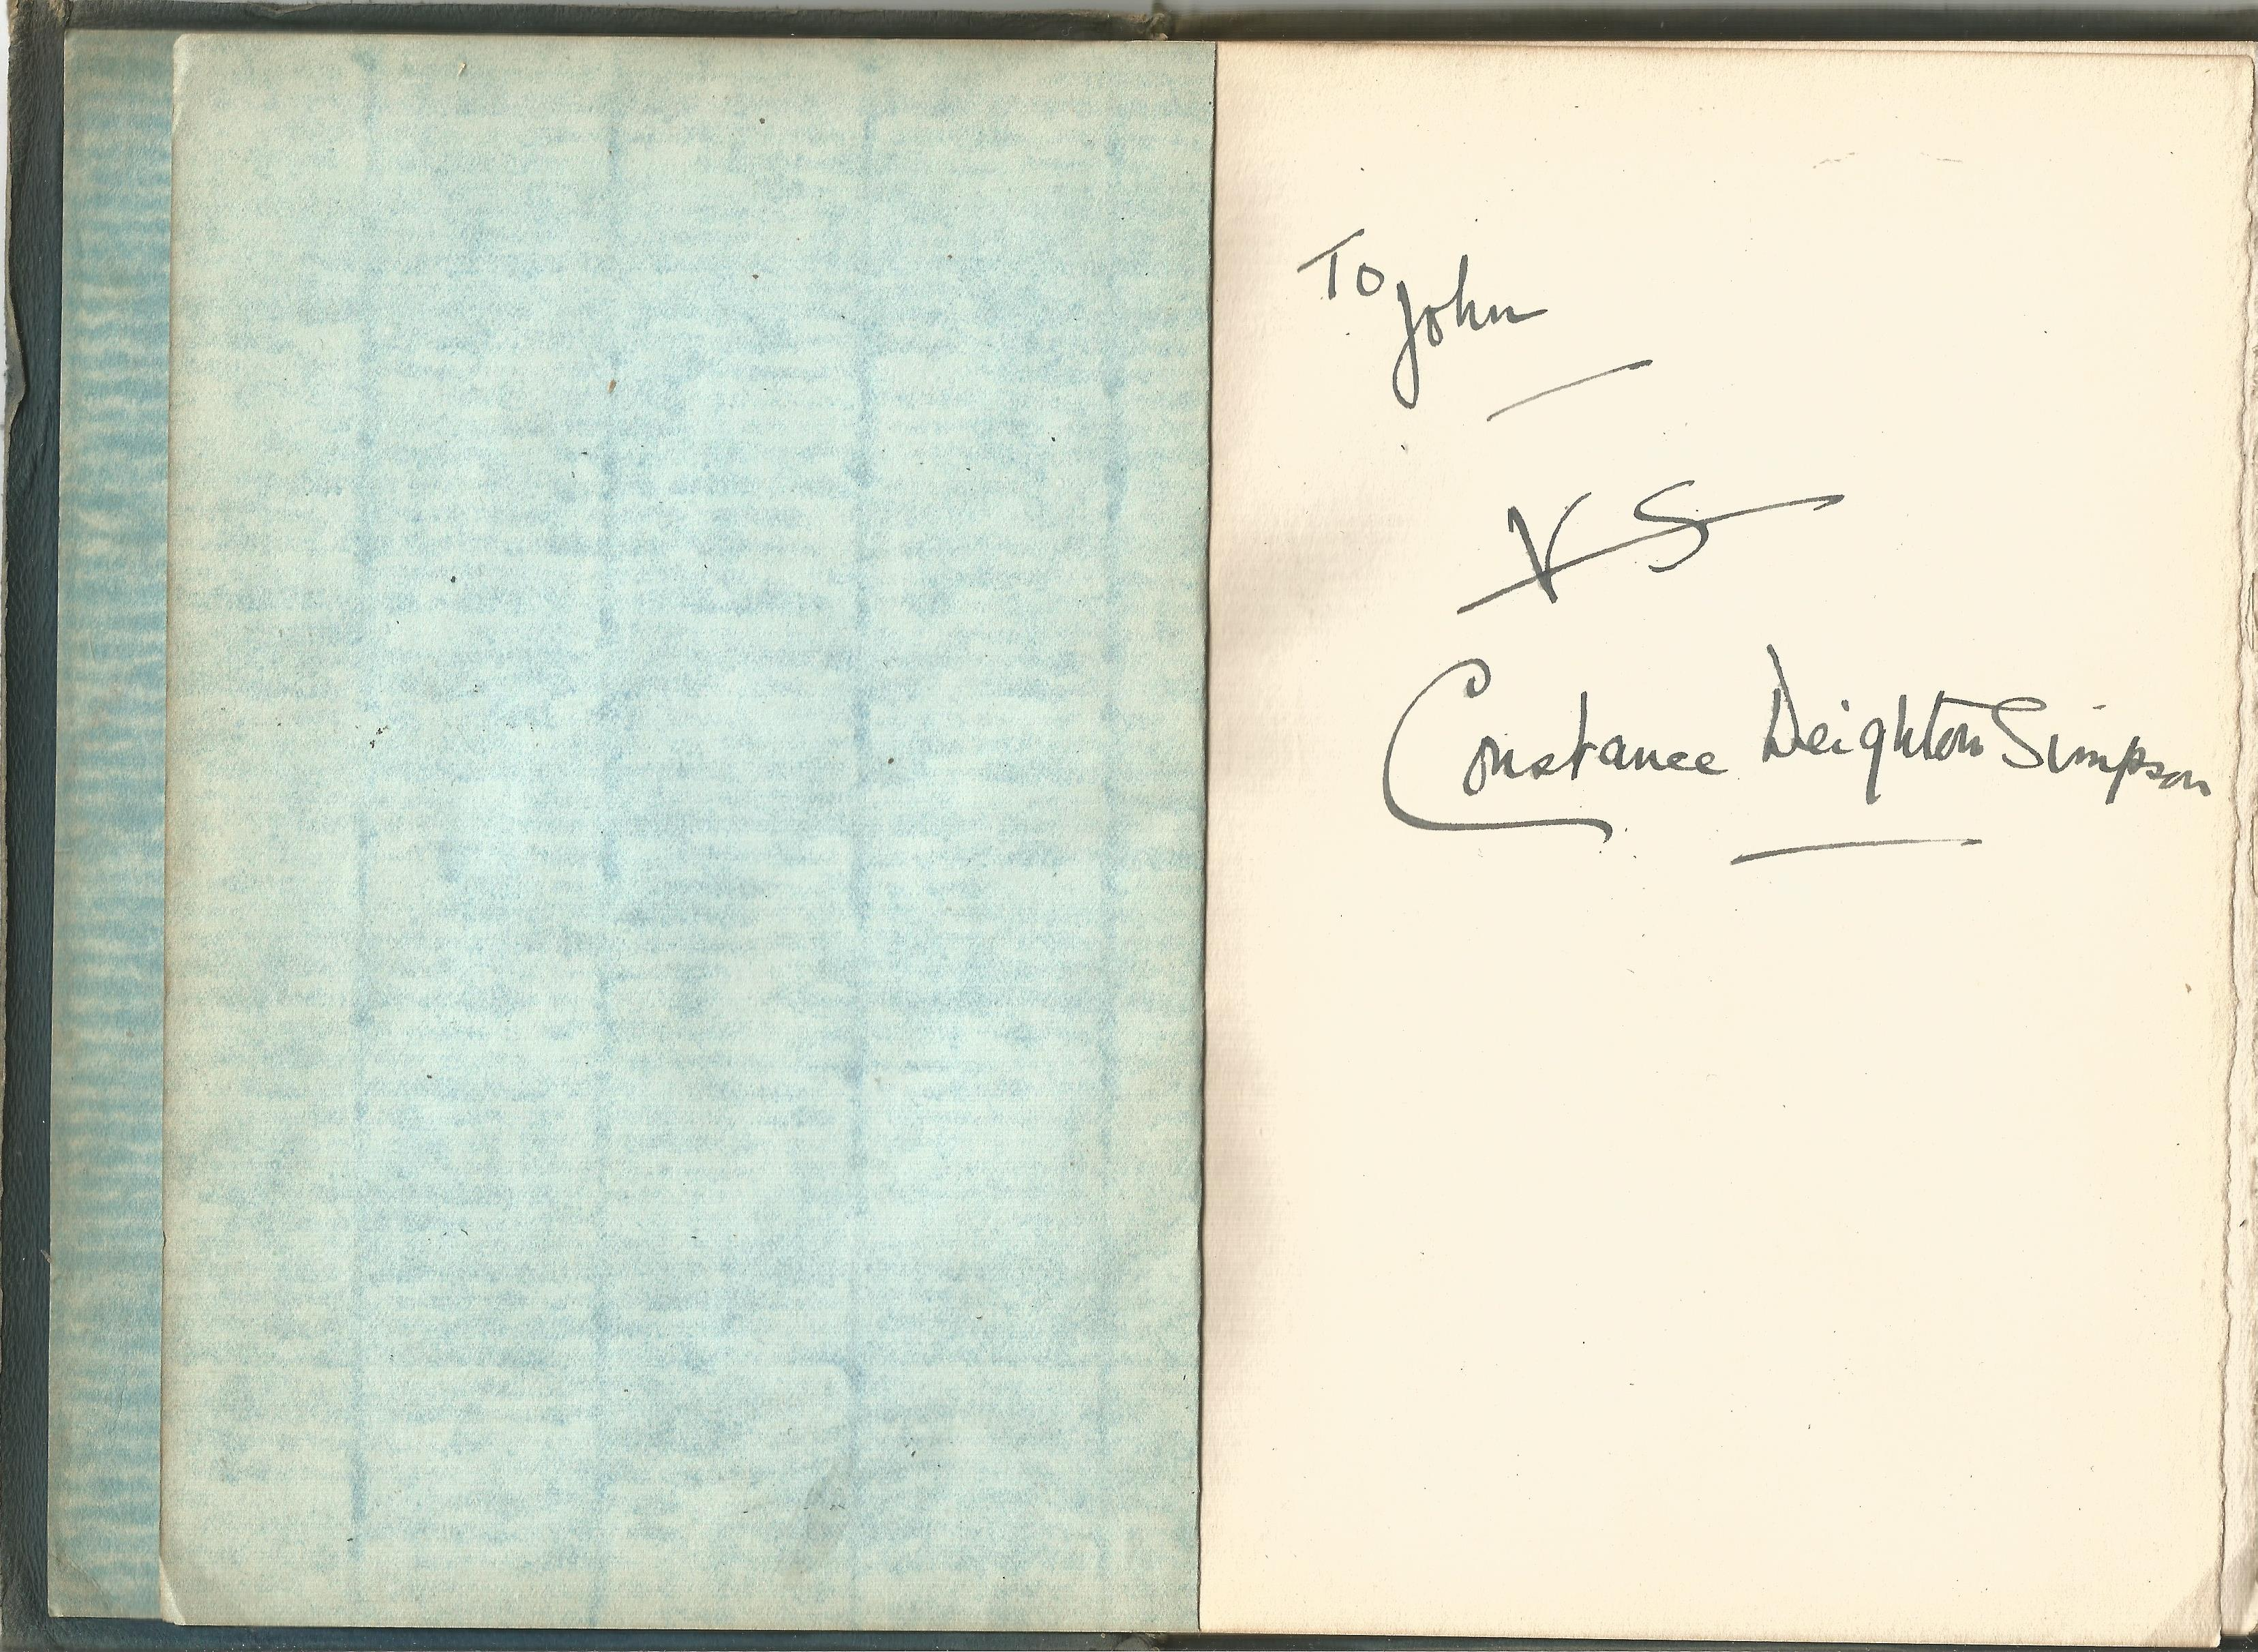 Constance Deighton Simpson Rare Suedex Cloth backed Book with Gold Lettering Poems and Sonnets - Image 2 of 2